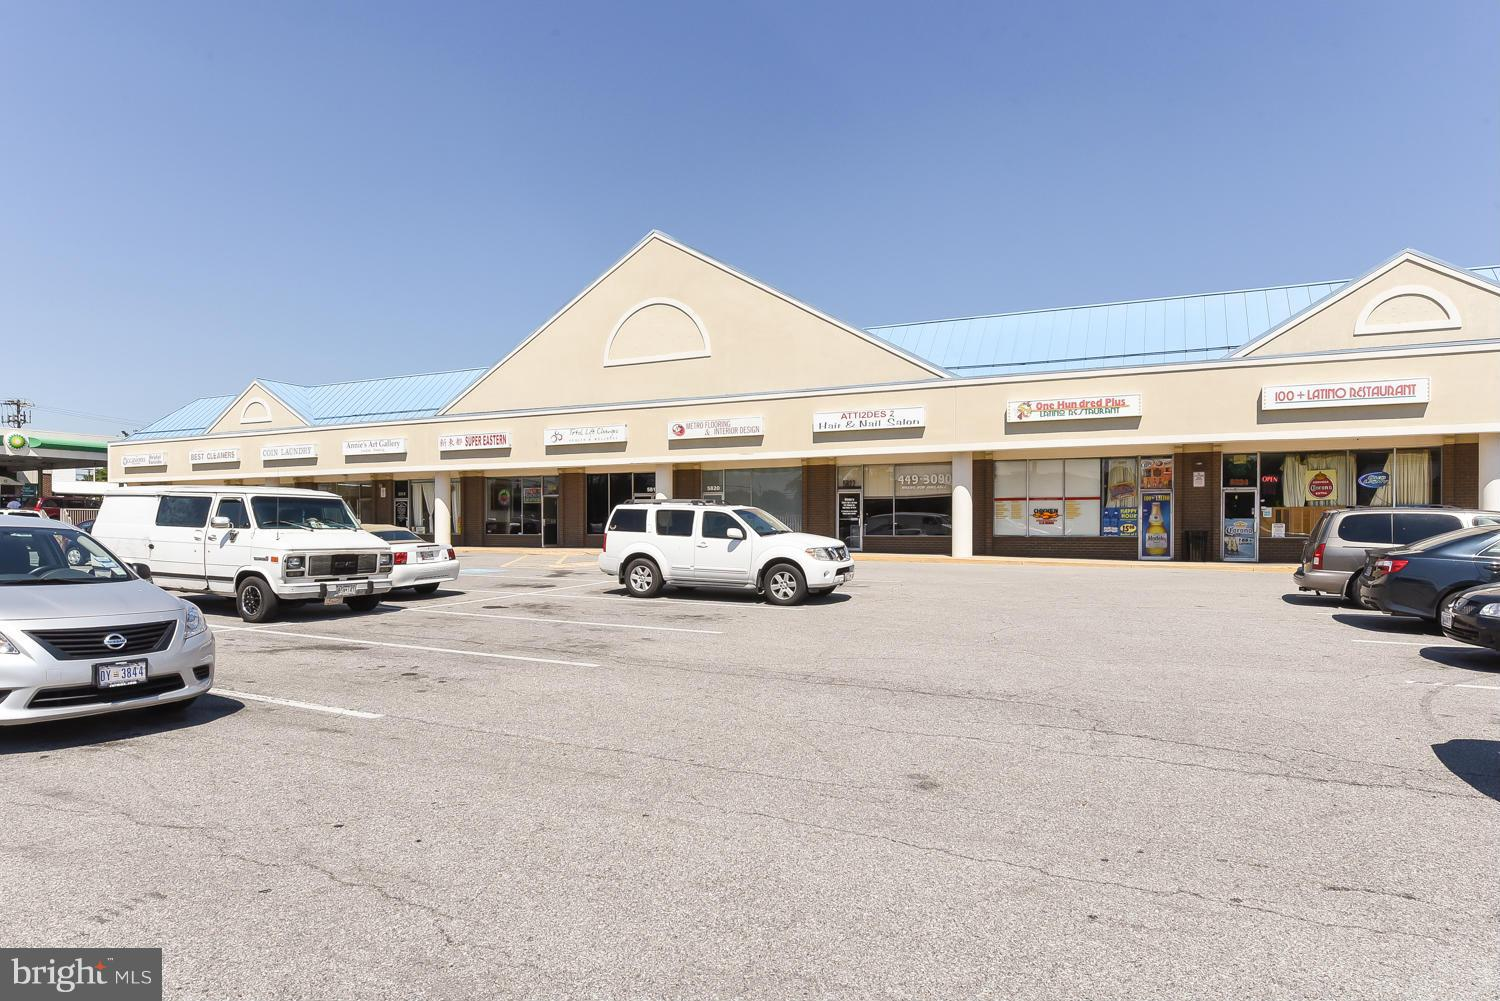 Allentown Way Plaza is located across from Aldi just off Branch Ave in Camp Springs and nearby Joint Andrews. All suites $18 psf  Extras utilities + water + trash. Former pick up cleaners Suite 5810/Size 1470 sf. $2,200. Former phone store Suite 5814 1,440 sf/ $2,160.  Well maintained center. Minimum 3 yr lease. $40 non refun app.